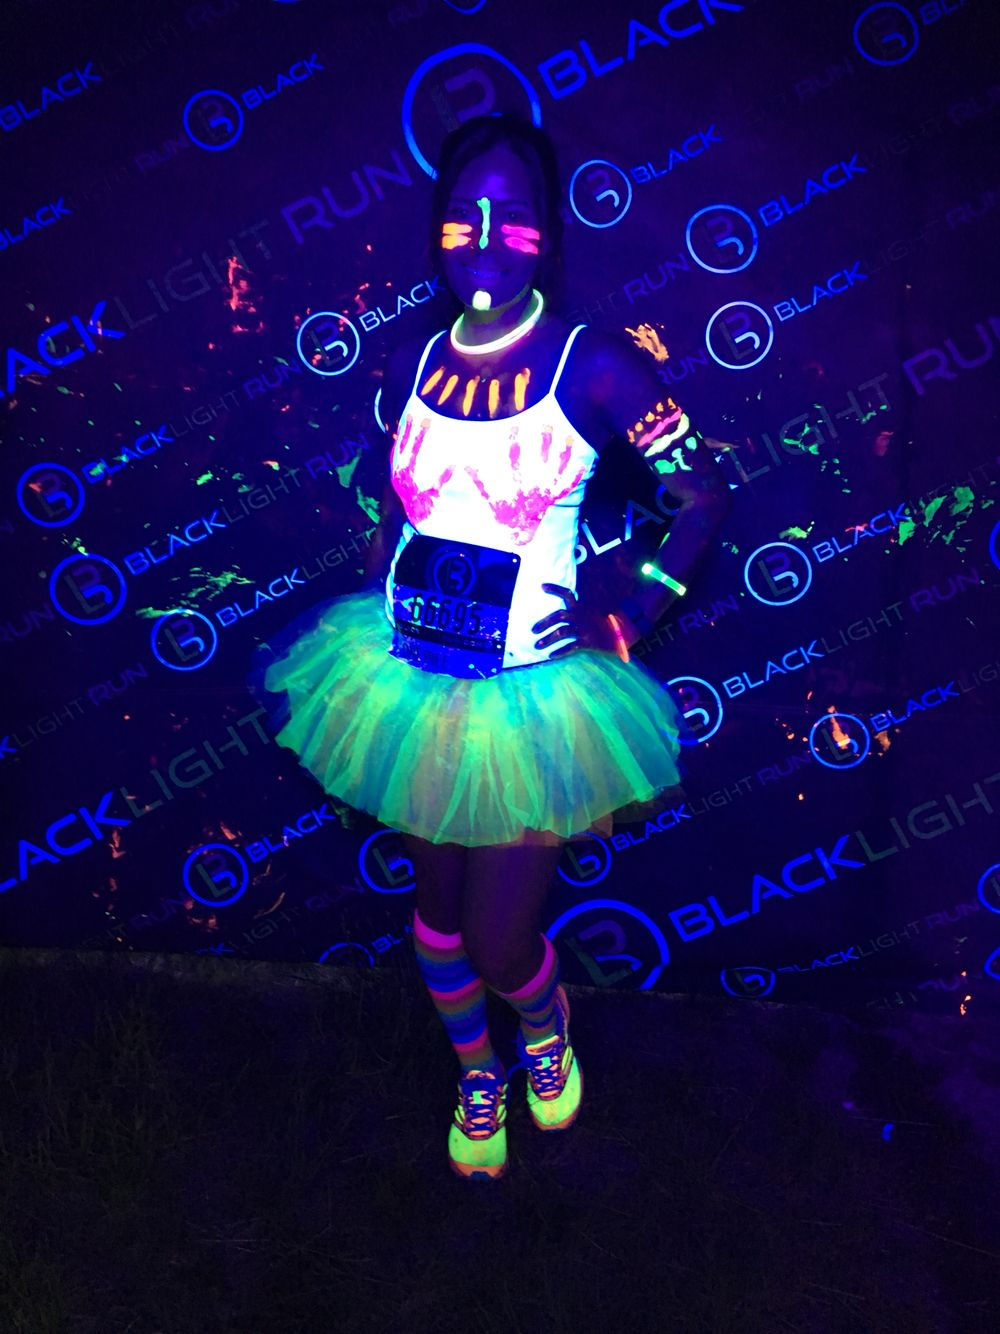 Glow In The Dark Blacklight Run Outfit With Images Glow Theme